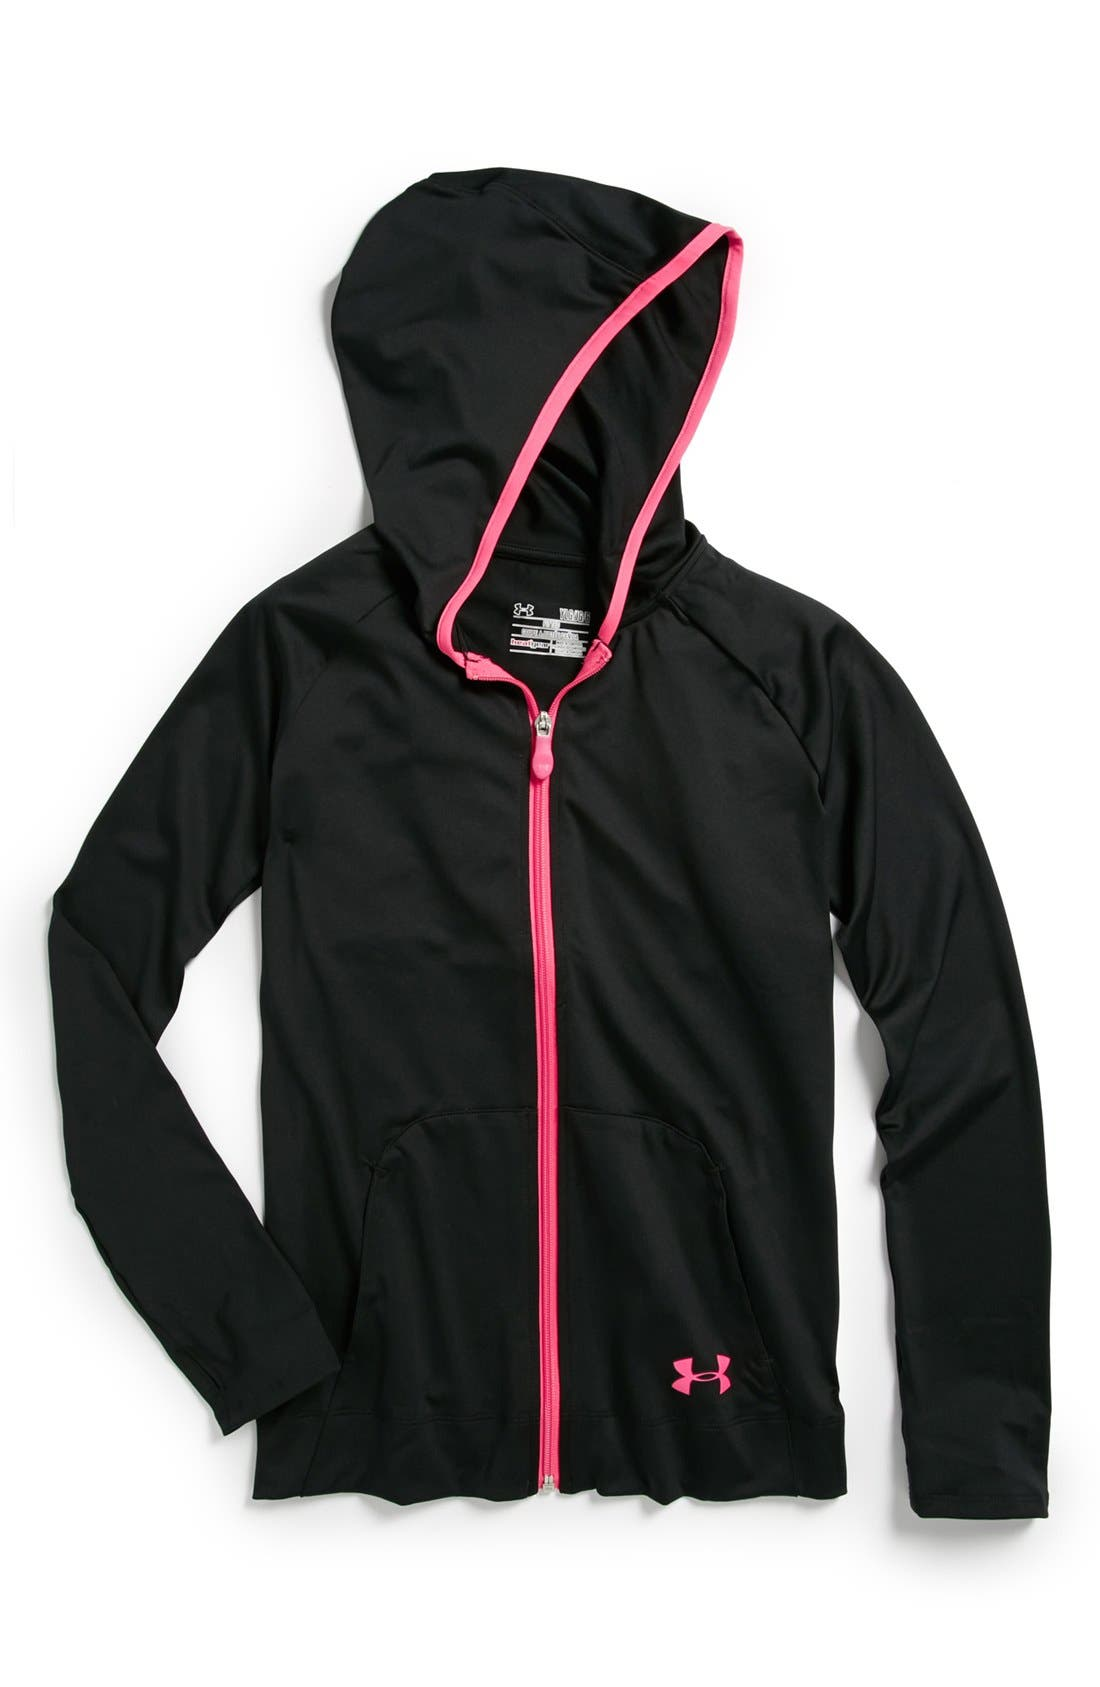 Main Image - Under Armour 'Victory' Jacket (Big Girls)